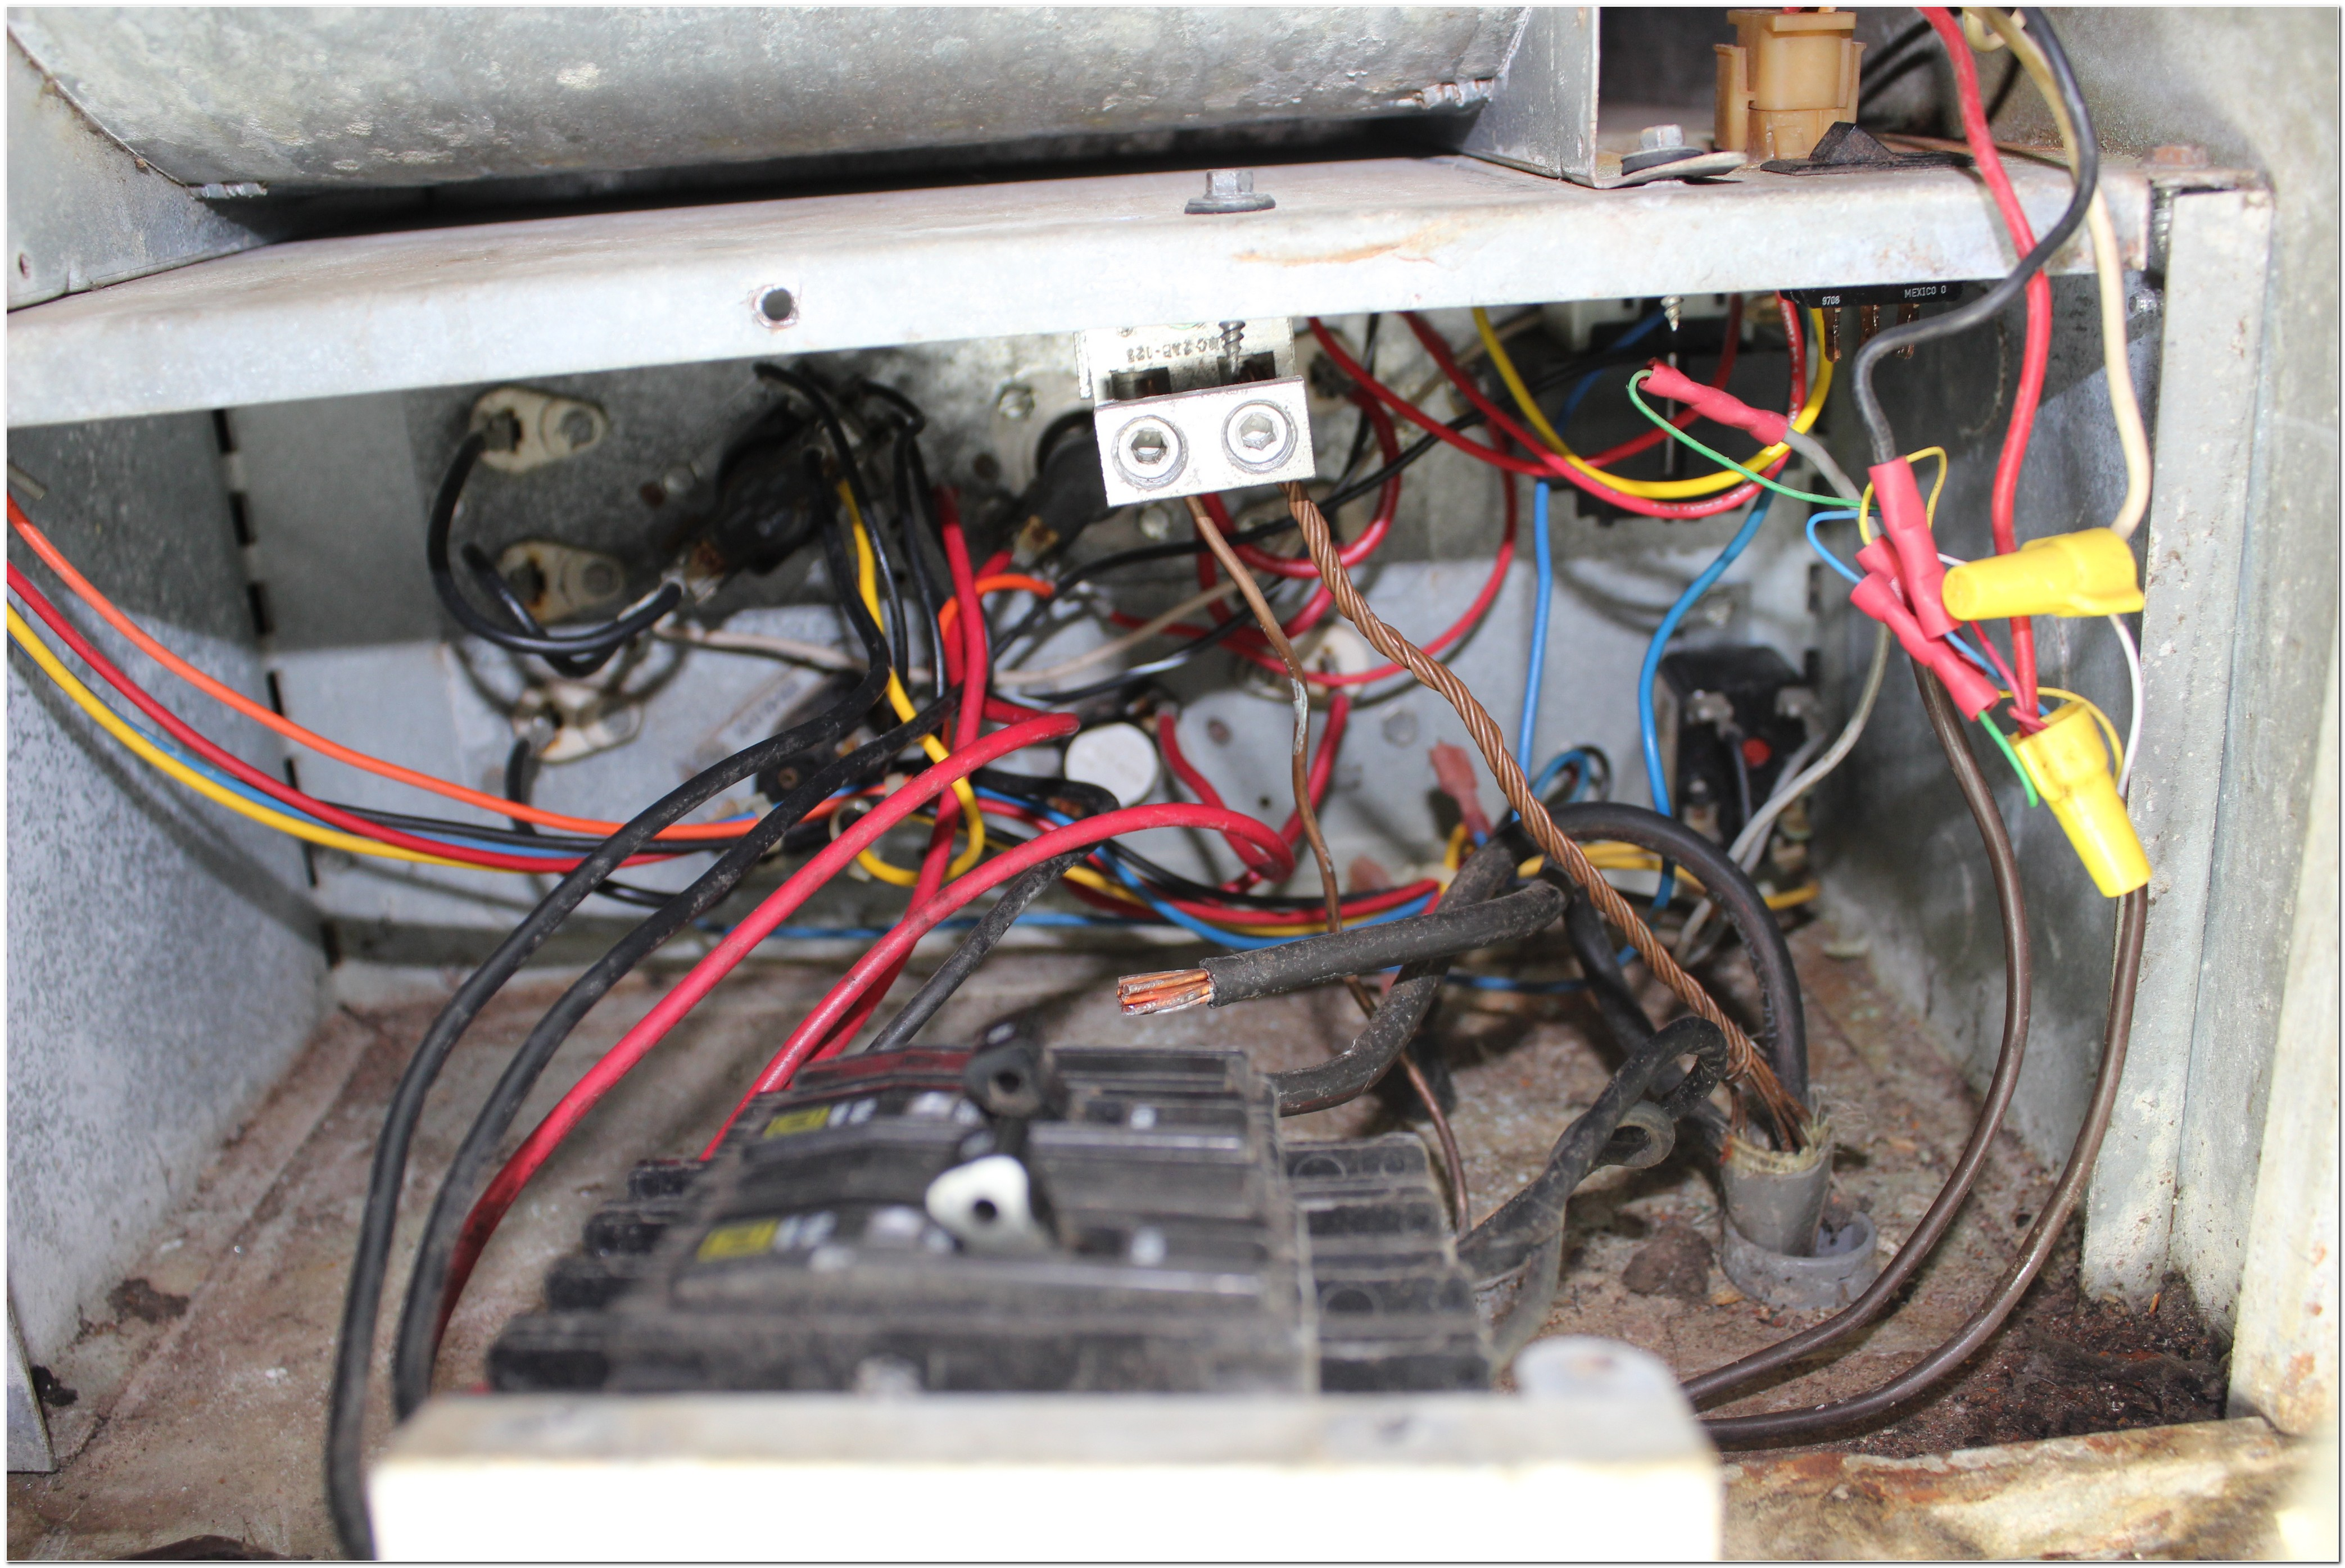 I Have A Intertherm Furnace Model E1eh 015ha  During The